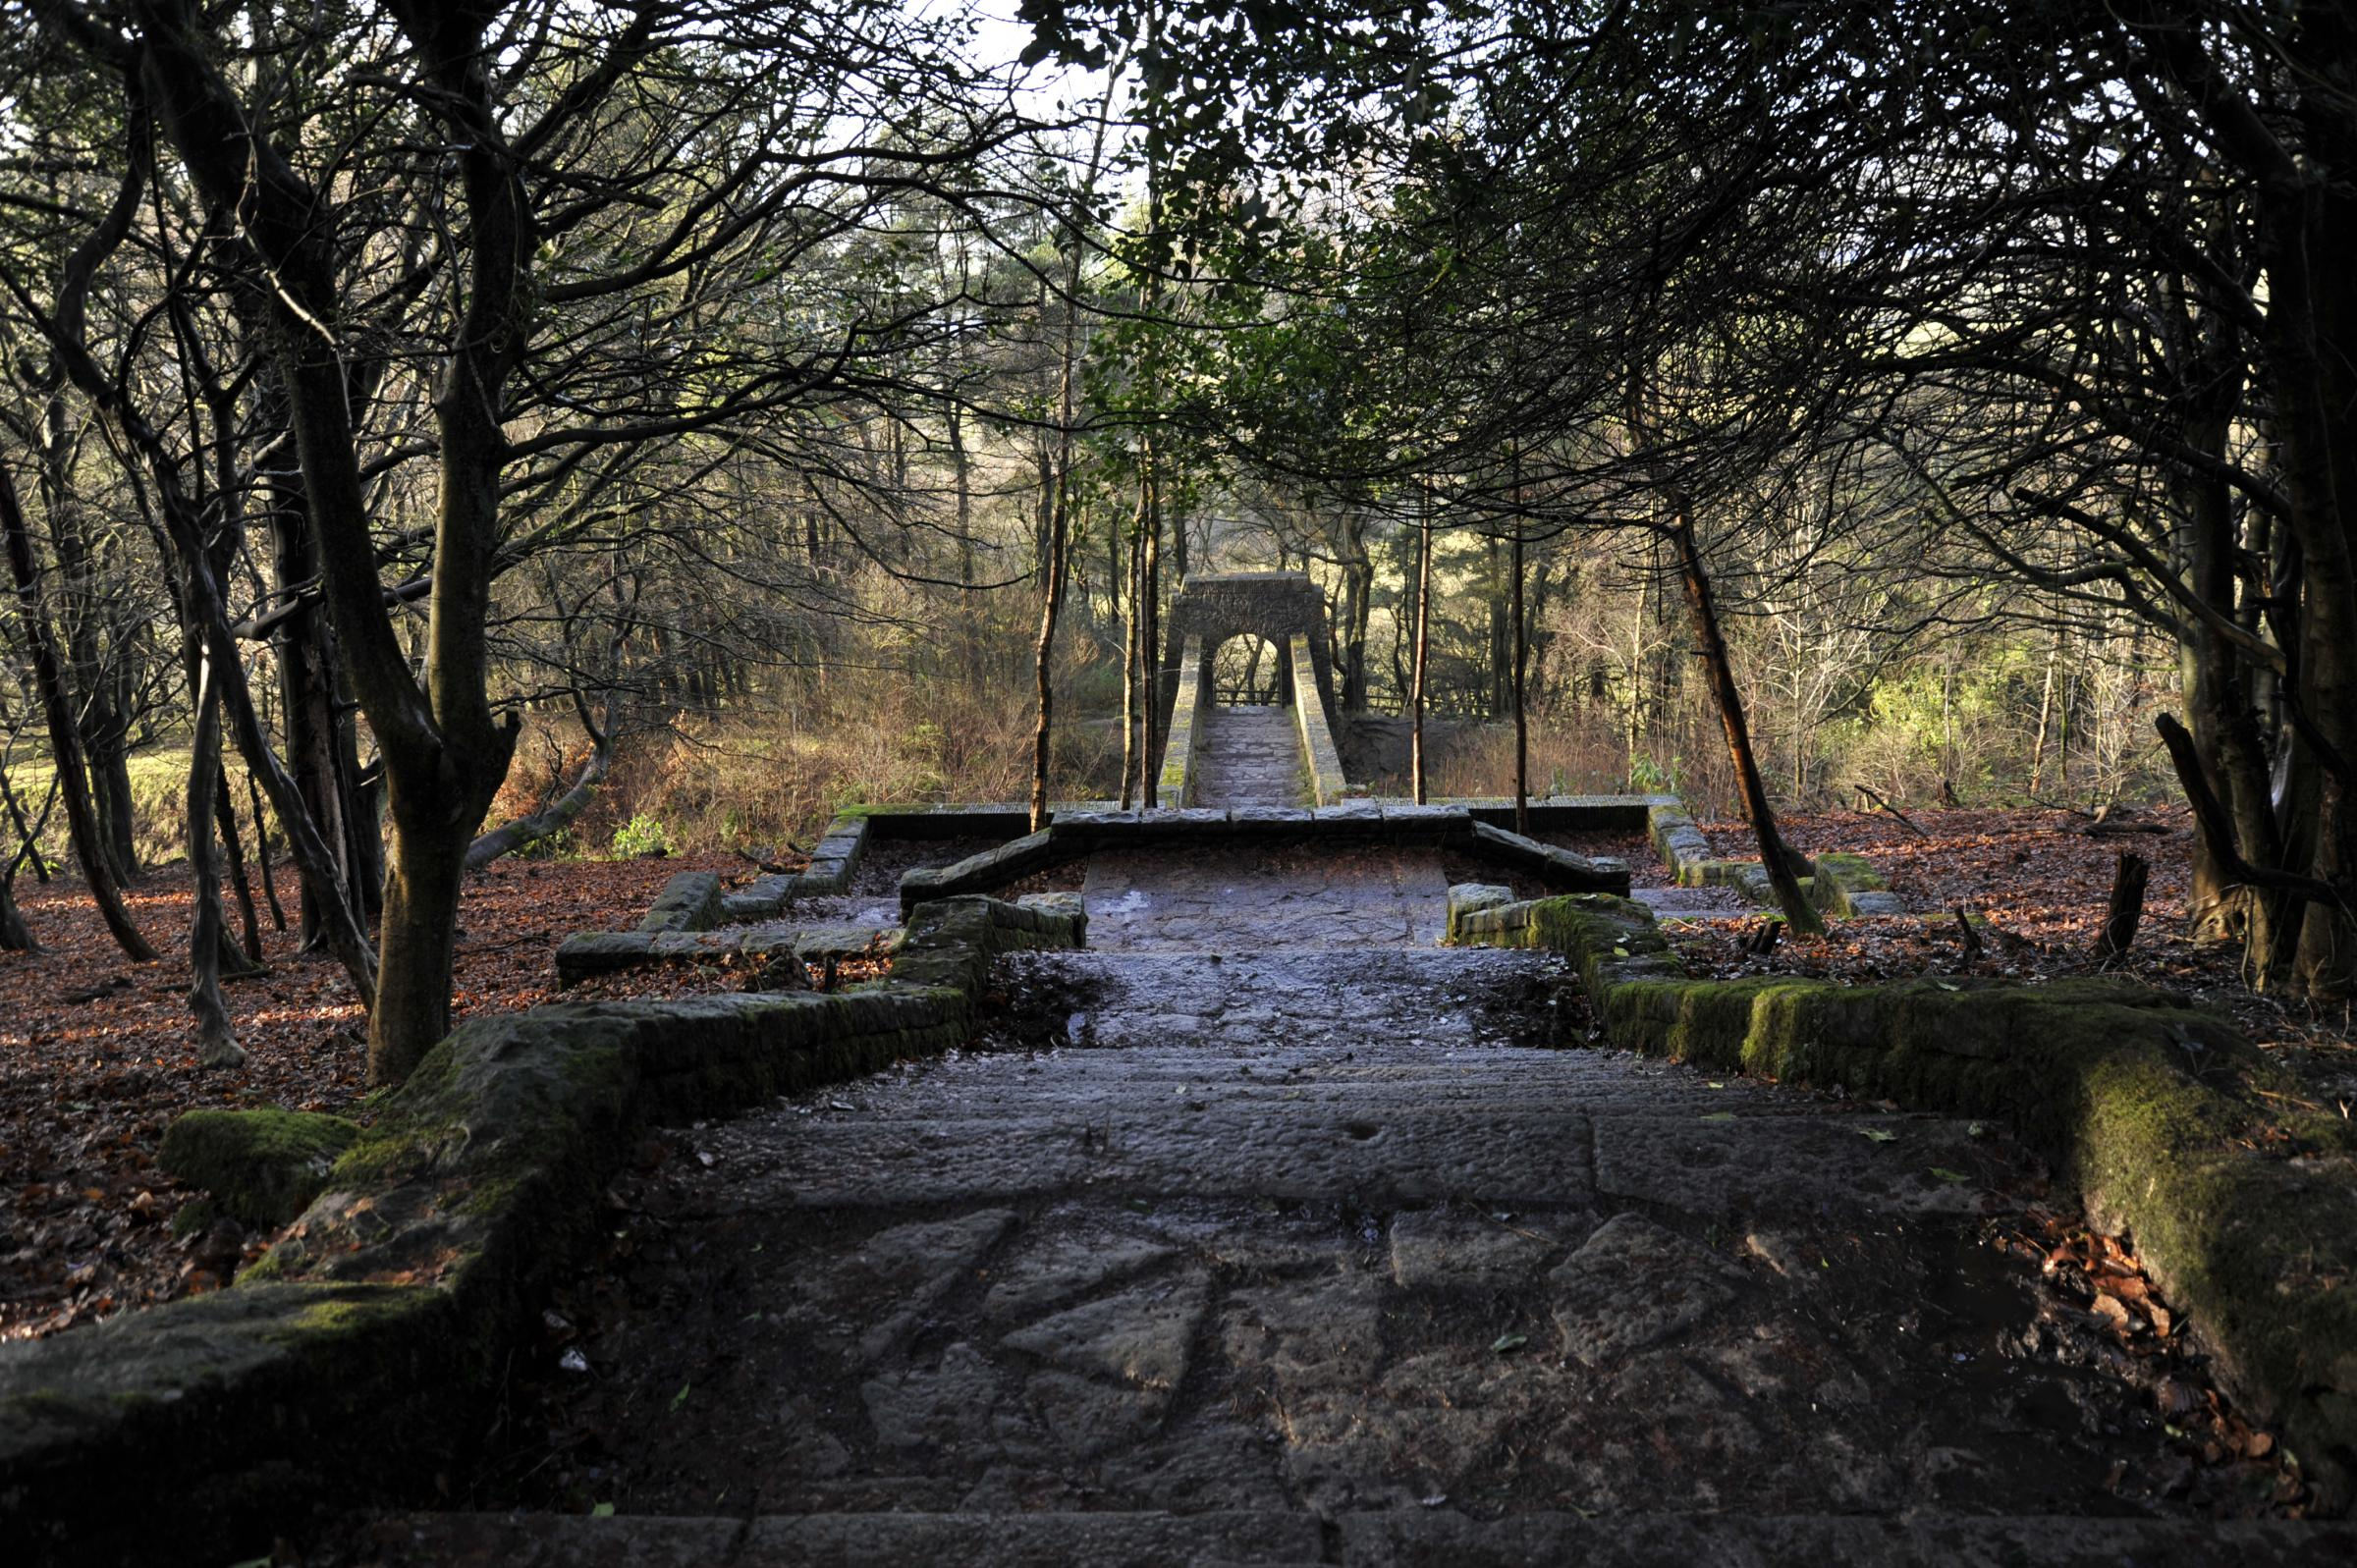 CONSERVATION: Part of Rivington Terraced Gardens